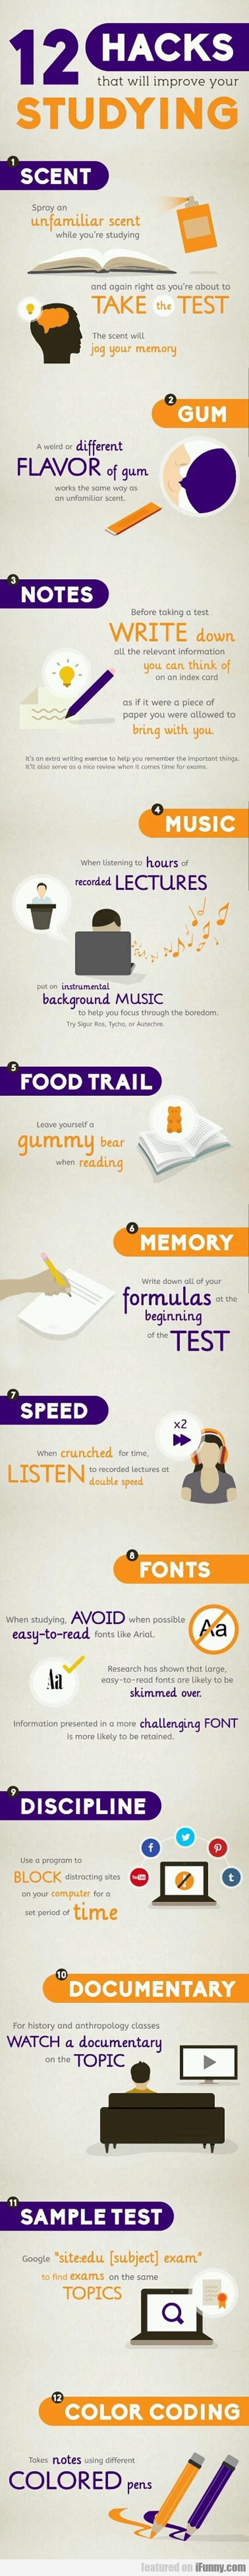 12 Hacks To Improve Your Studying